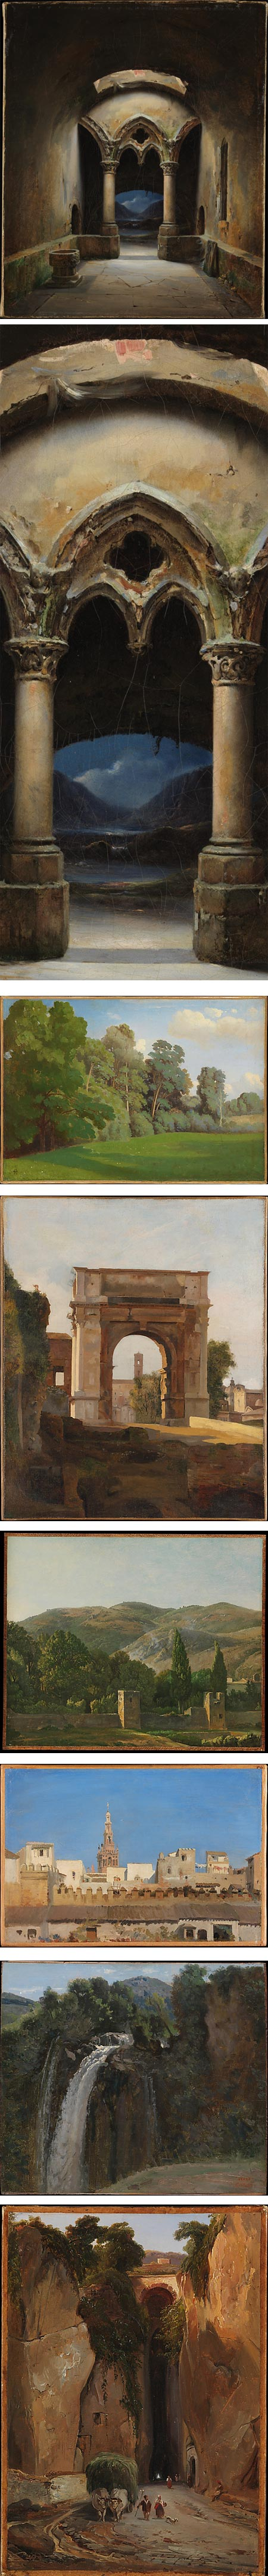 The Path of Nature: French Paintings from the Whitney Collection: Charles-Marie Bouton, Théodore Caruelle d'Aligny, [unknown], Simon Denis, Adrien Dauzats, Camille Corot, Charles Rémond